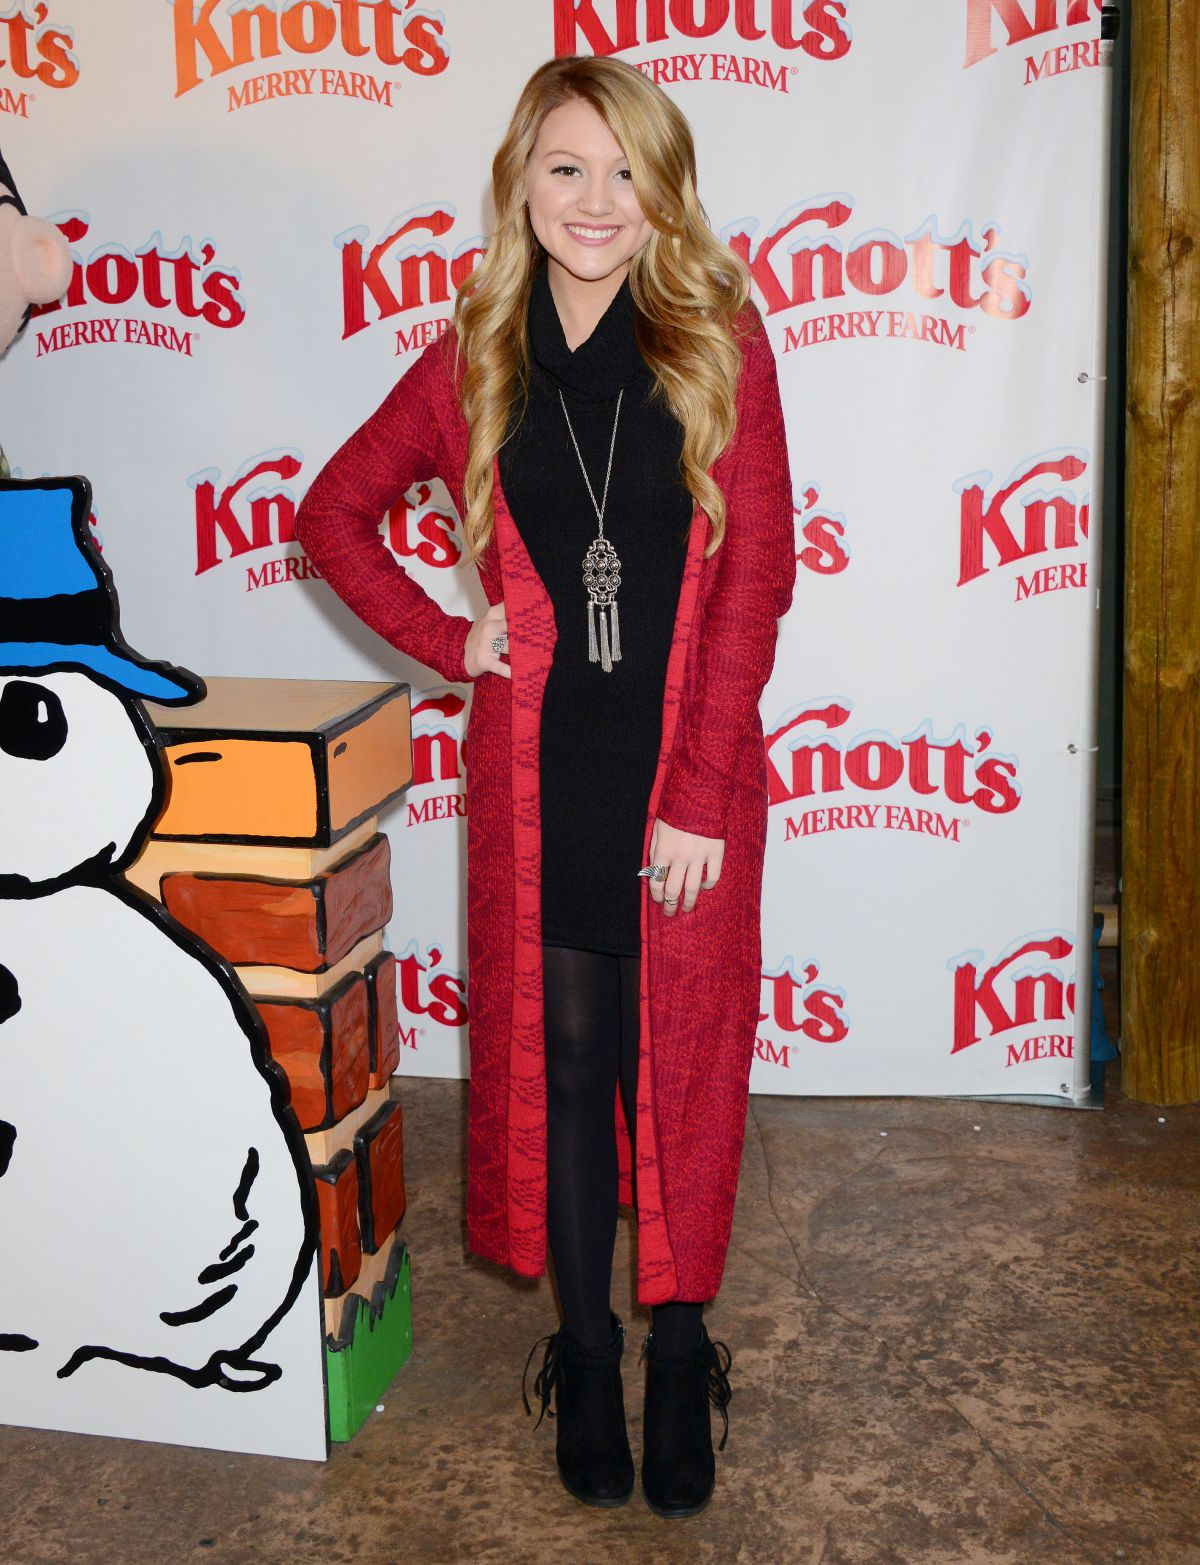 BROOKE SORENSON at Knott's Merry Farm Countdown to Christmas and Tree Lighting 12/05/2015